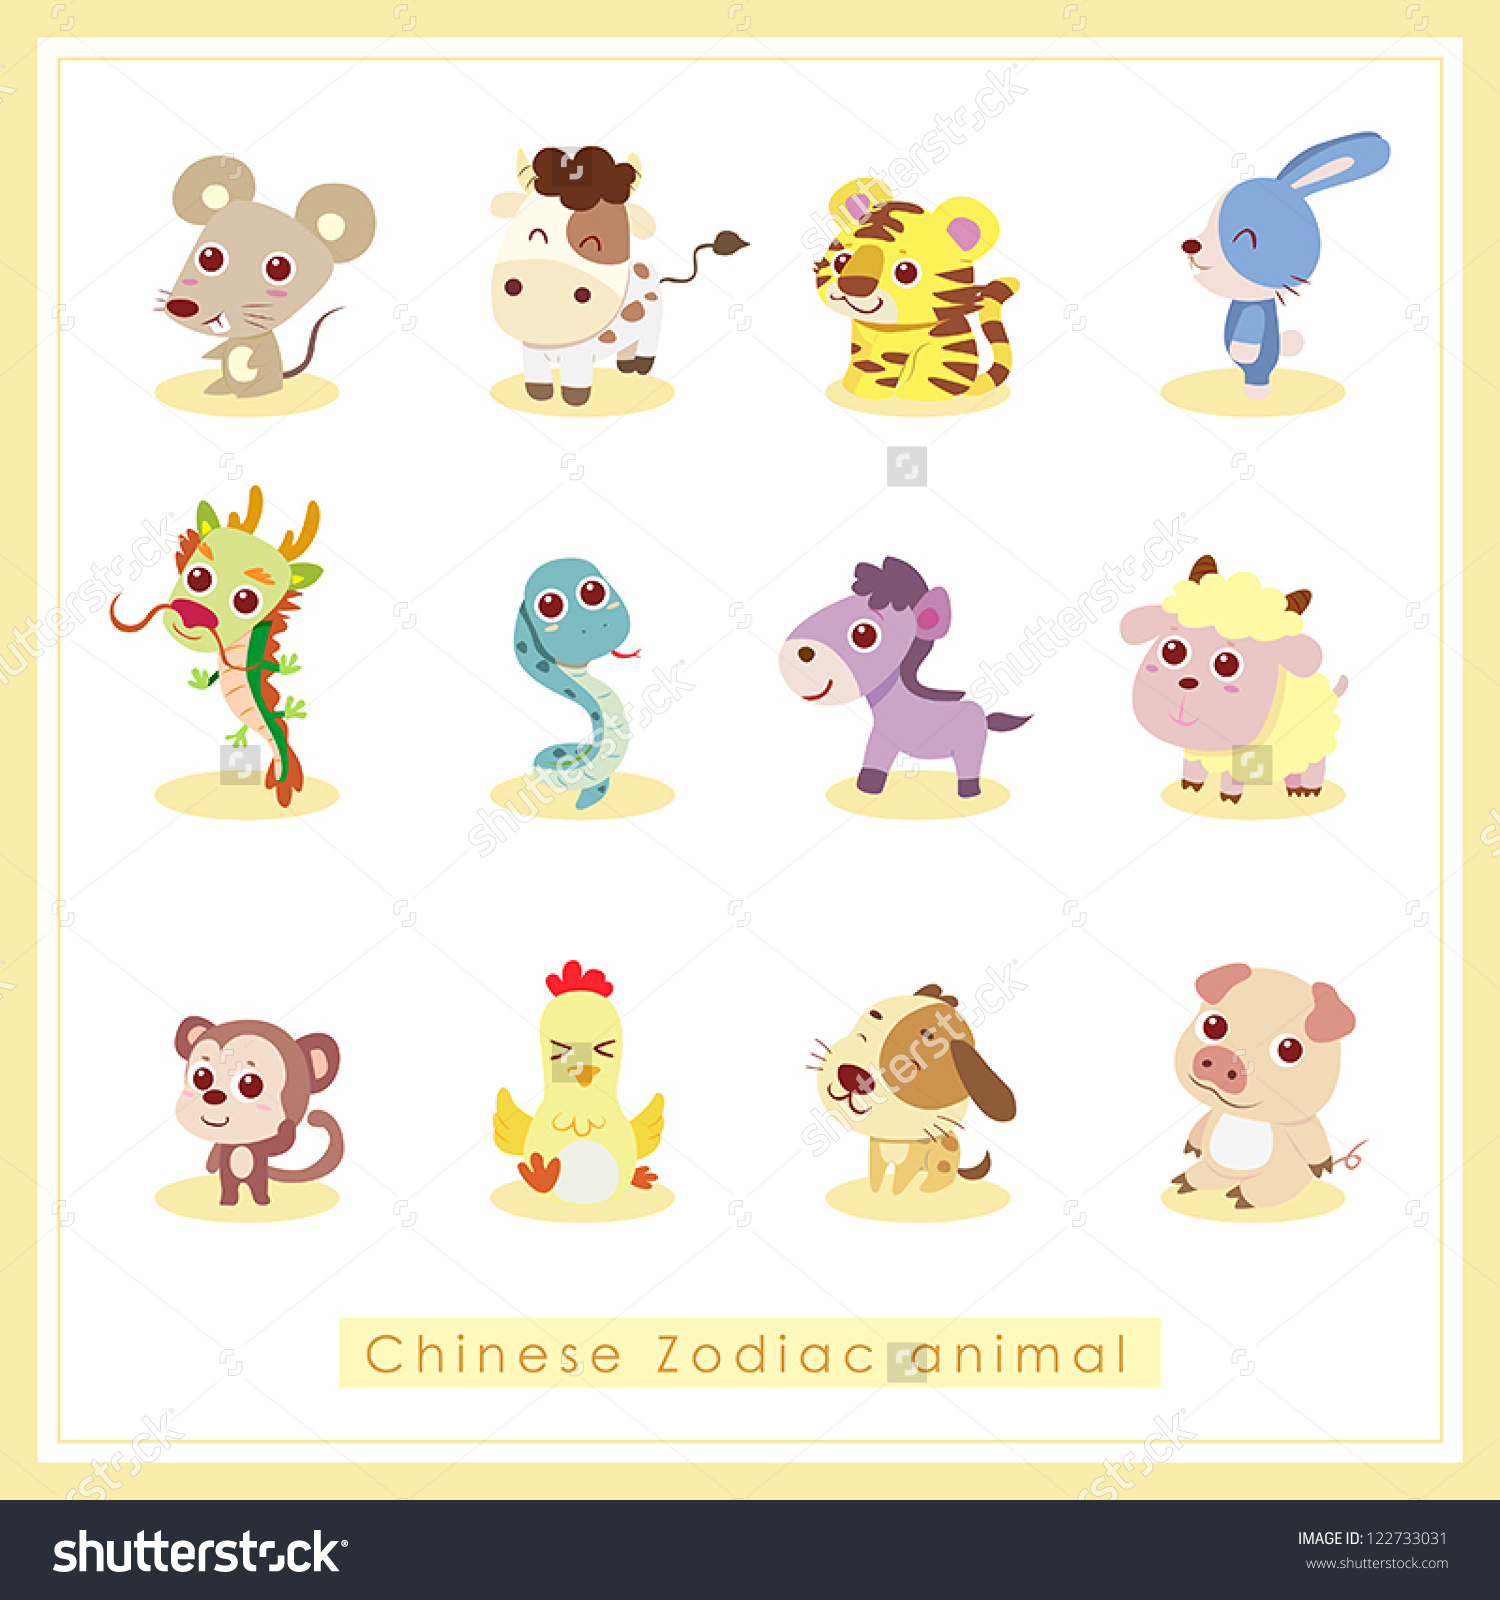 cartoon animal stickers in - photo #19